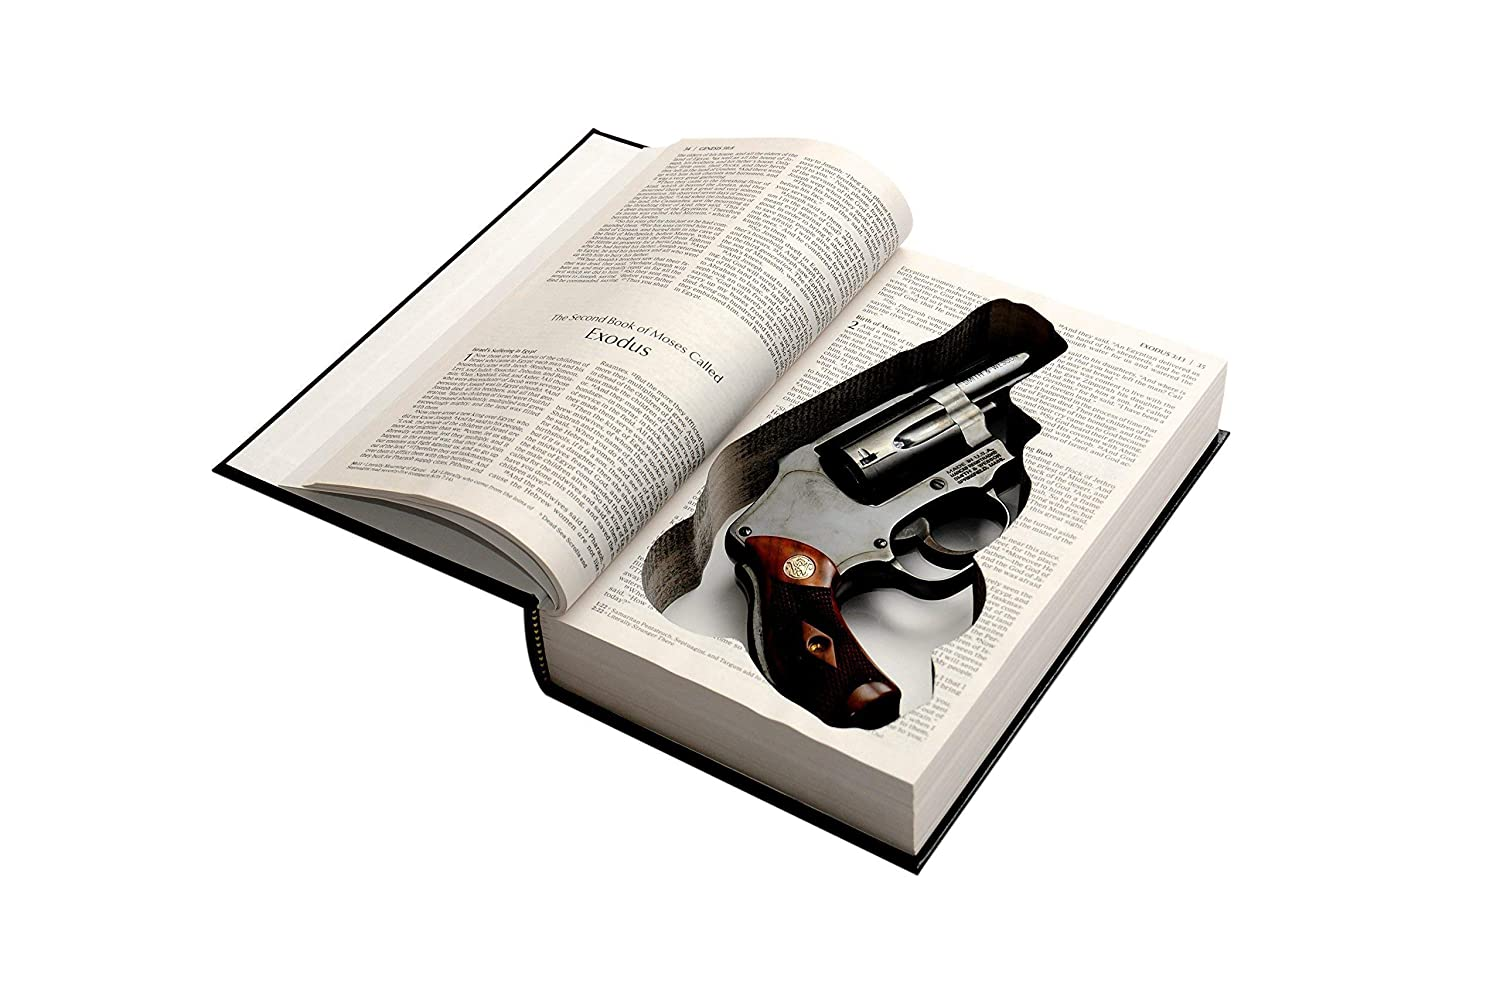 Bible Book Safe for Snubnosed Revolvers - Concealed Gun Storage - Fits Ruger LCR, Smith and Wesson, Taurus Model 85